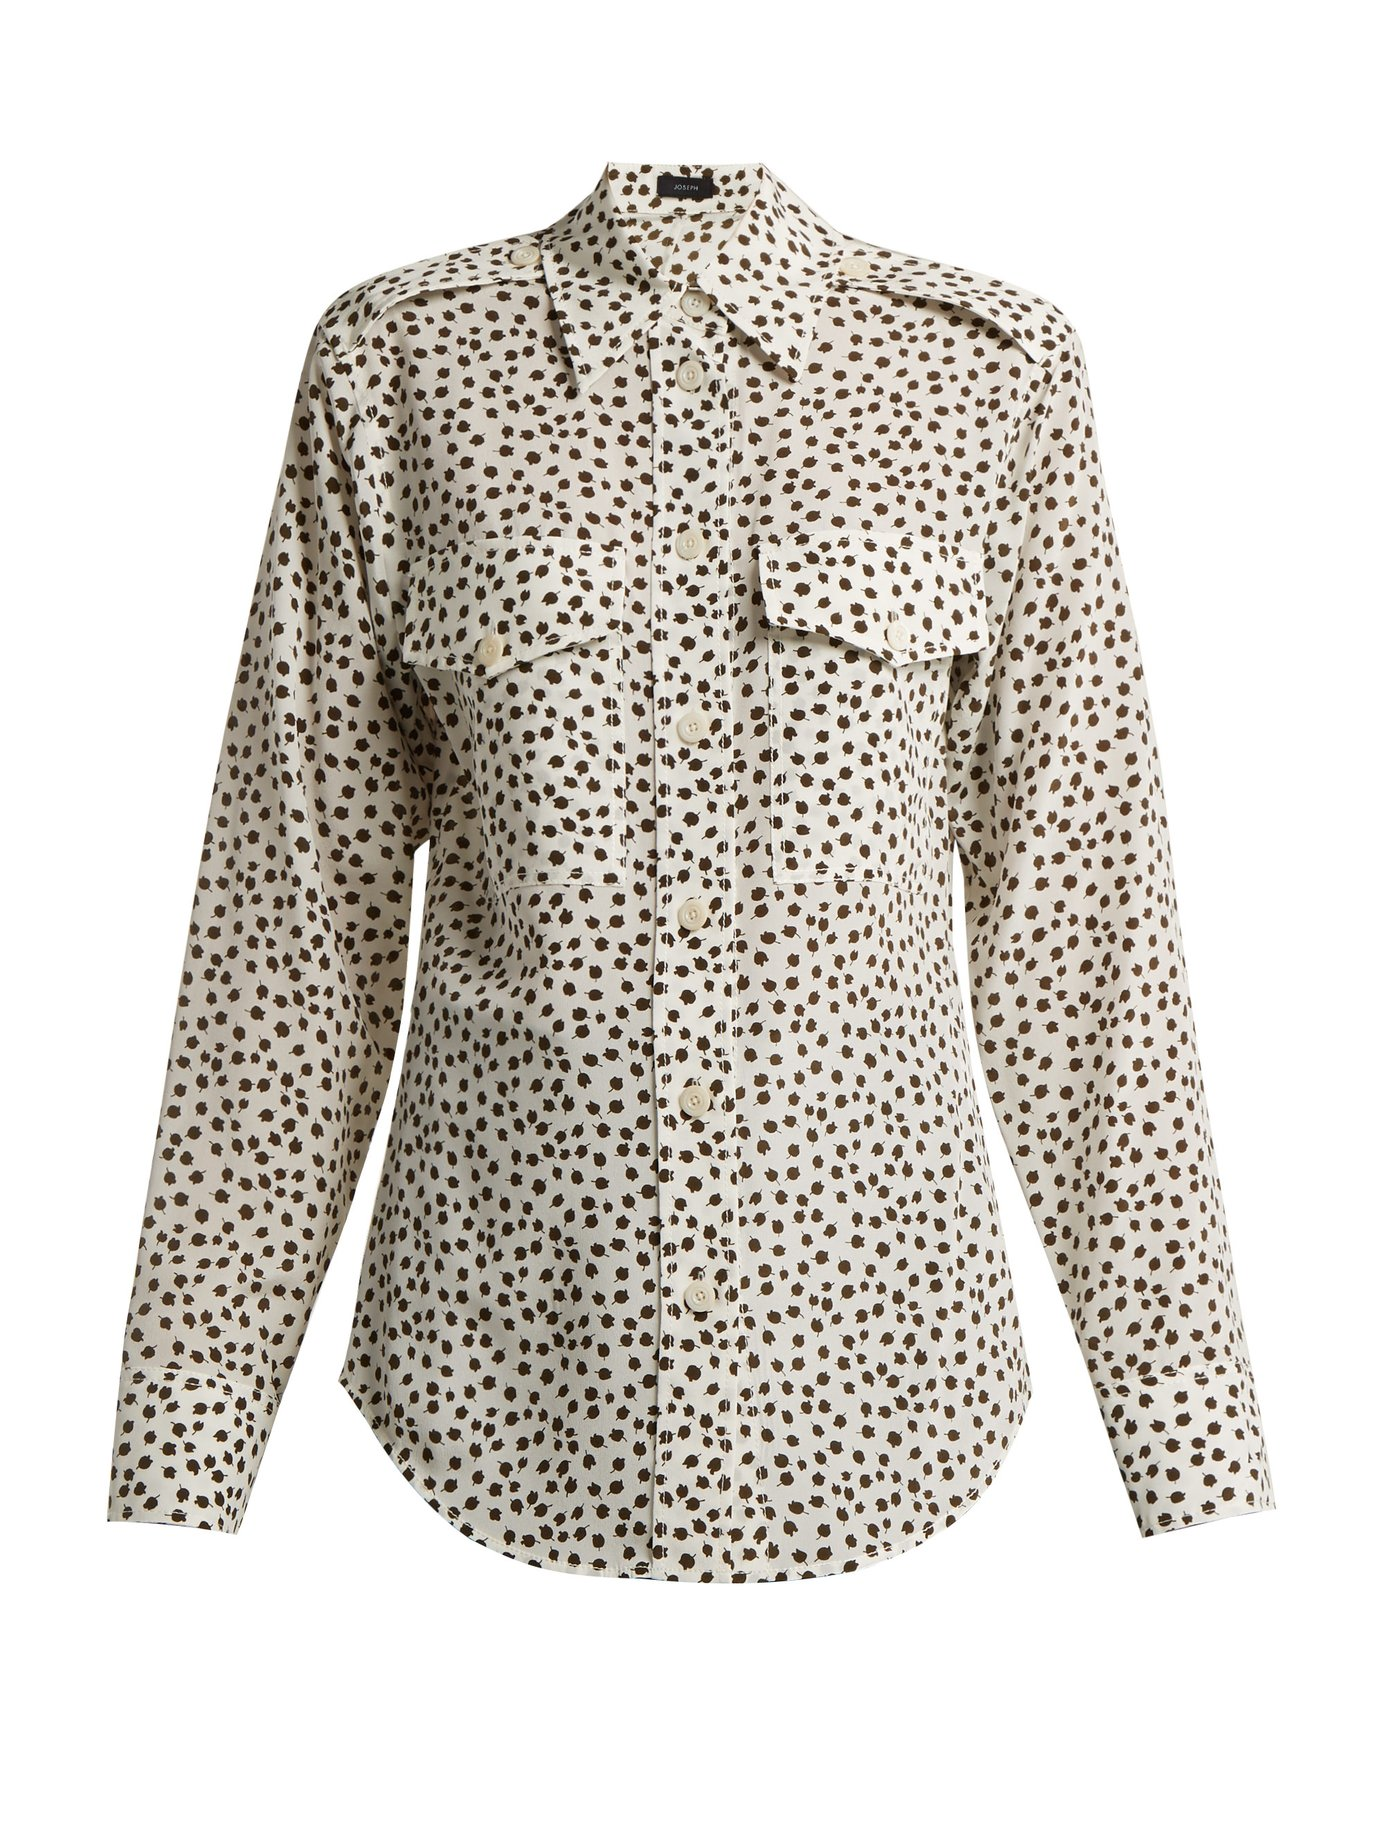 Joseph Rainer Printed Silk Shirt-Kate Middleton